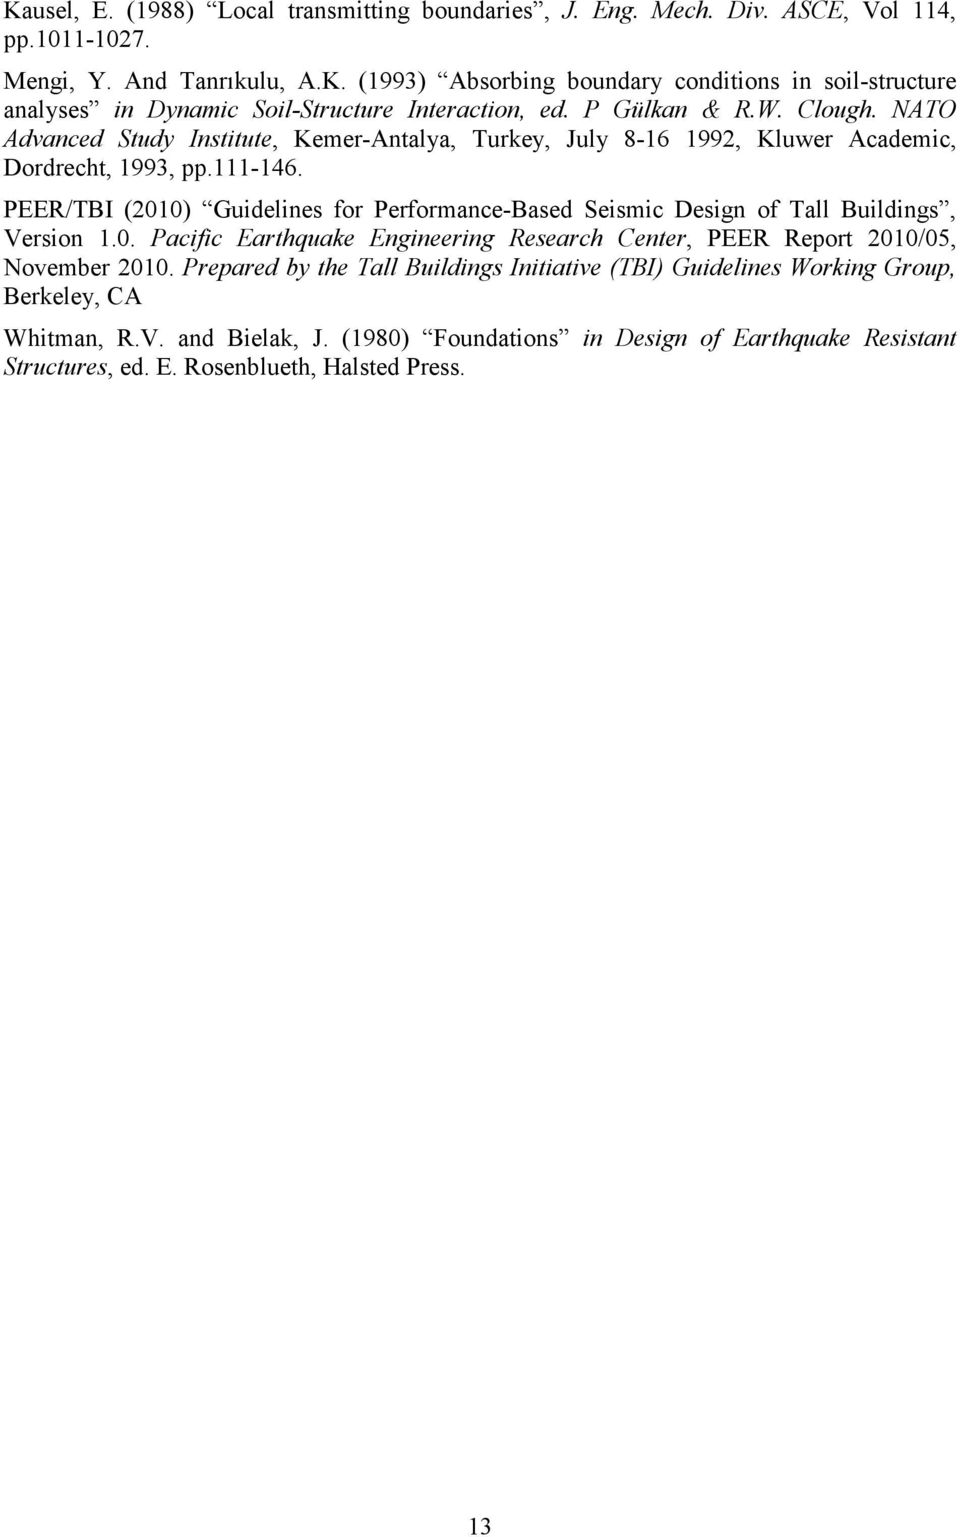 PEER/TBI (2010) Guidelines for Performance-Based Seismic Design of Tall Buildings, Version 1.0. Pacific Earthquake Engineering Research Center, PEER Report 2010/05, November 2010.